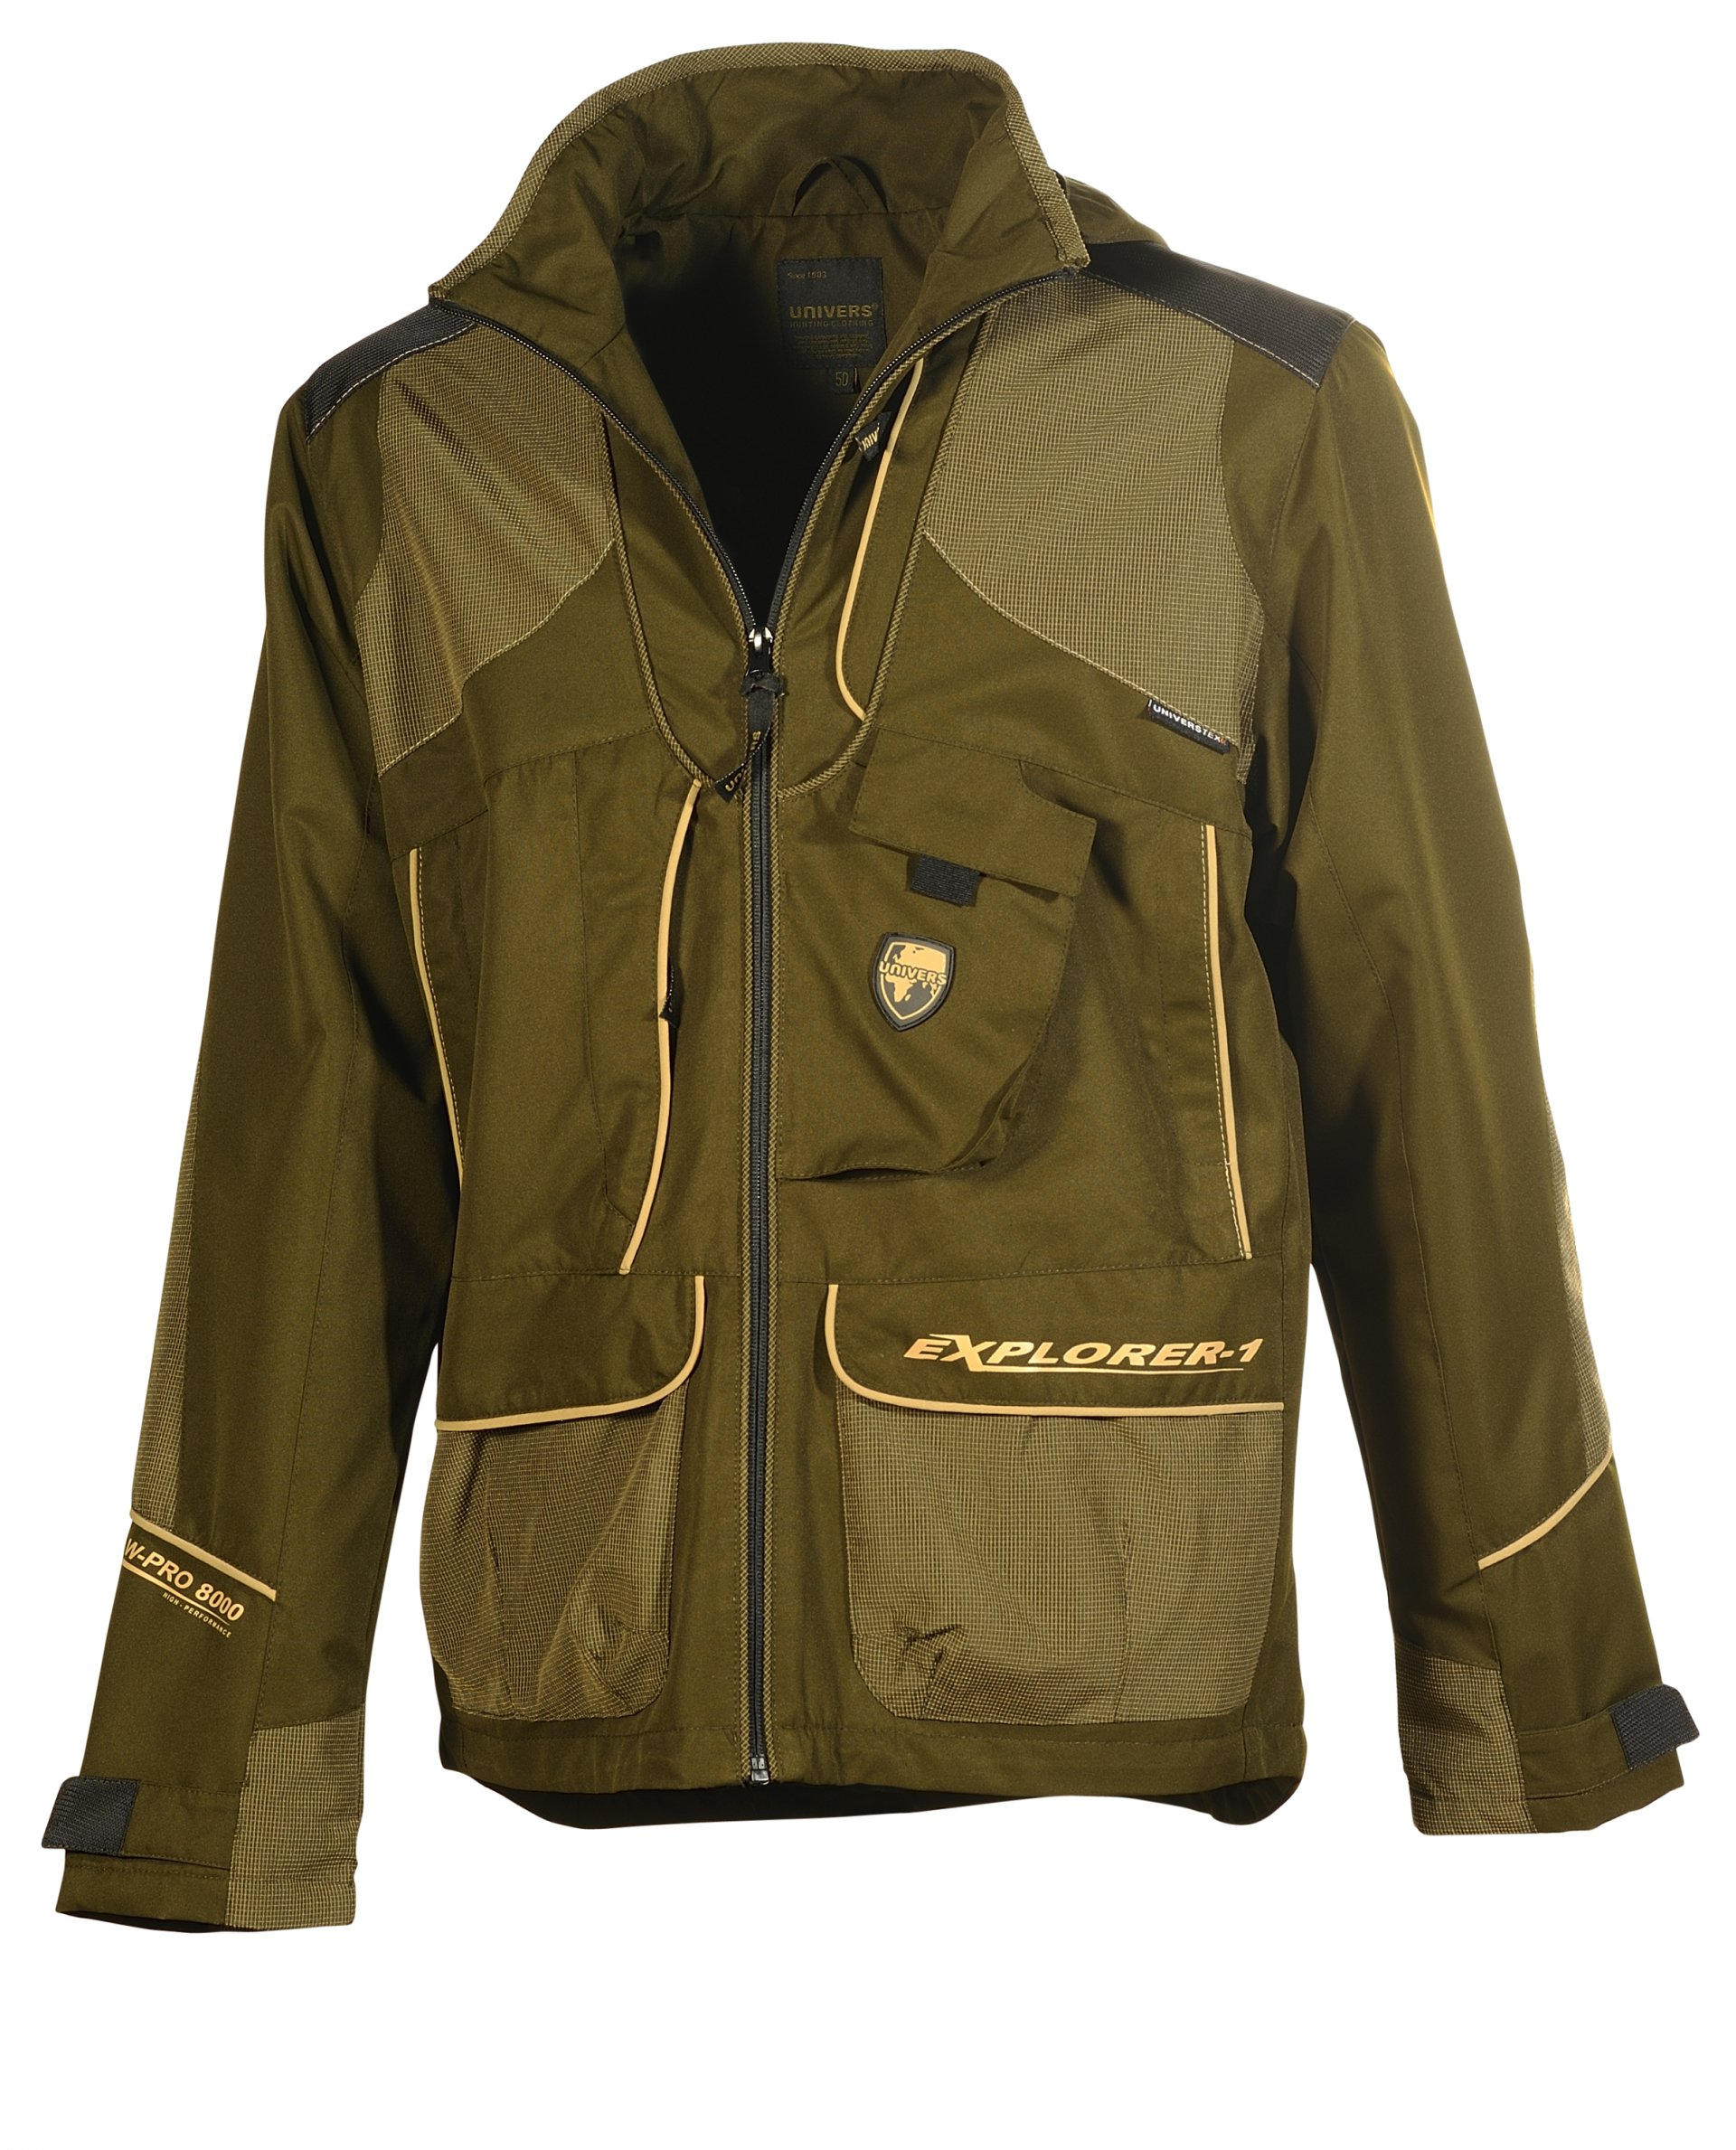 Univers Waterproof Explorer Jacket 91054/402